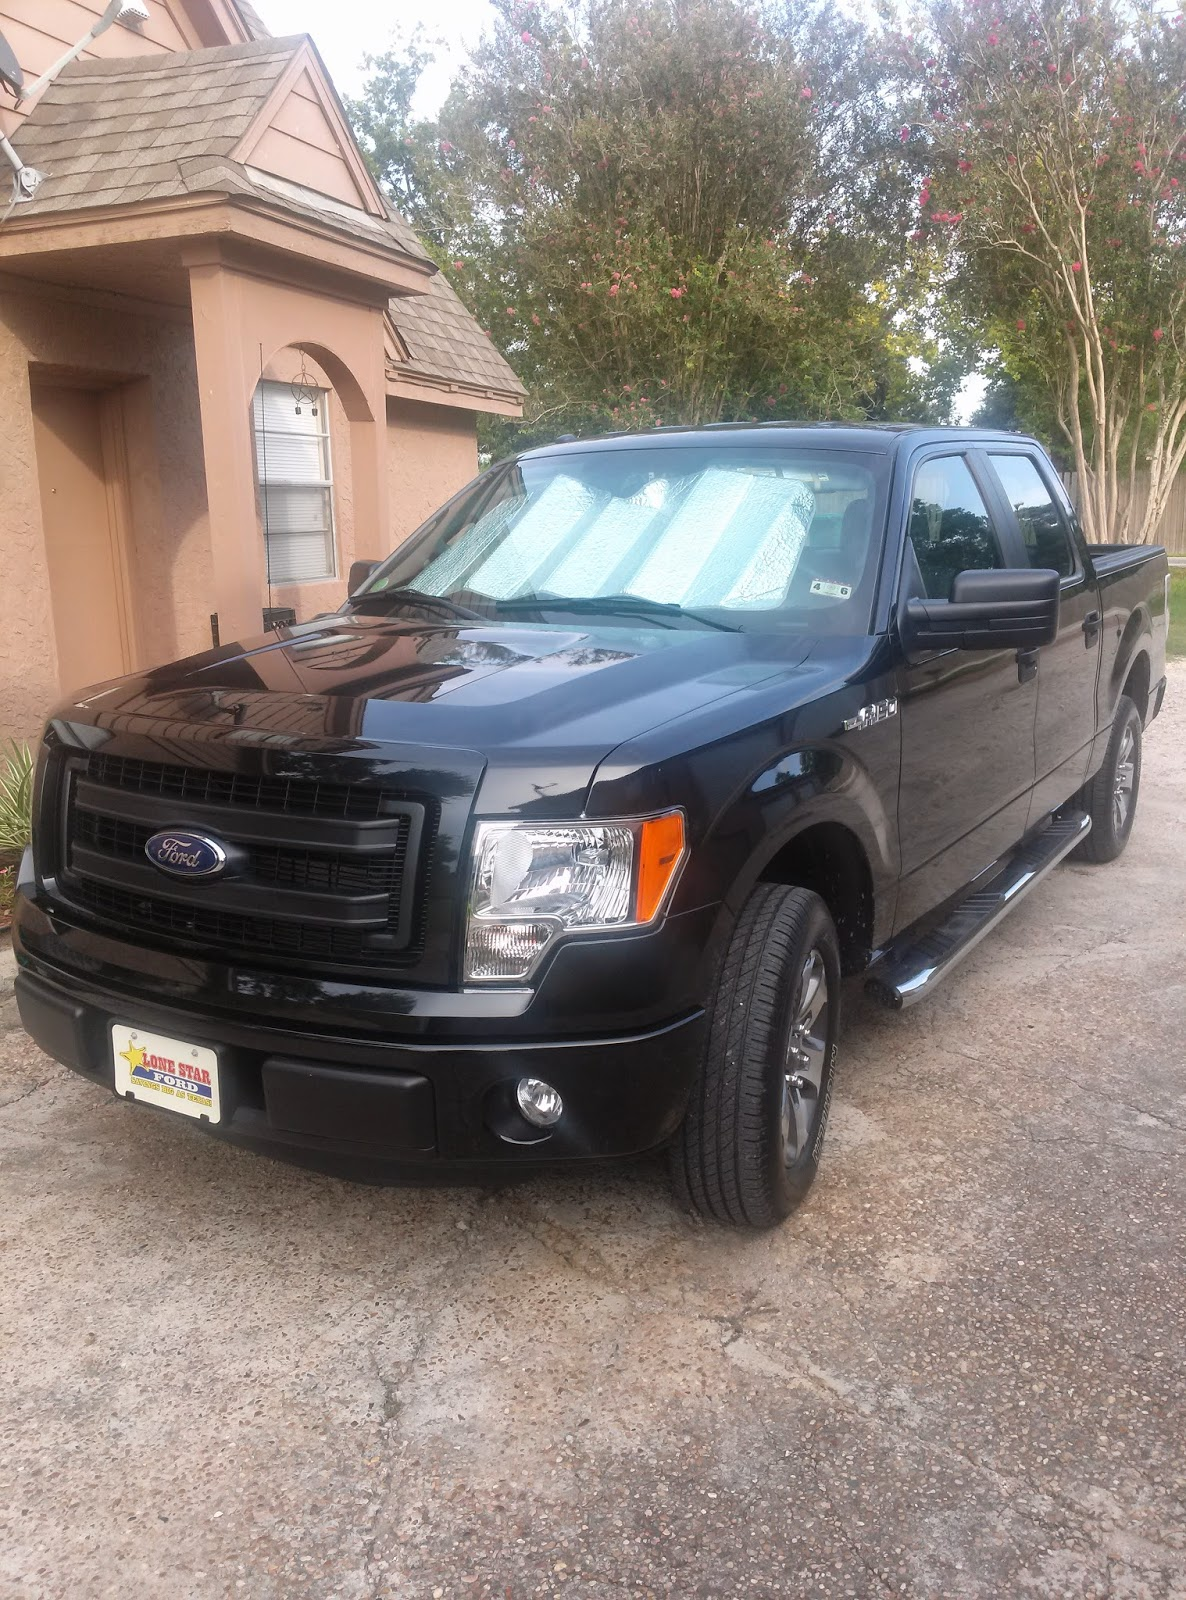 dale 39 s bits and pieces of the rainbow 2014 ford f 150 stx crewcab review. Black Bedroom Furniture Sets. Home Design Ideas